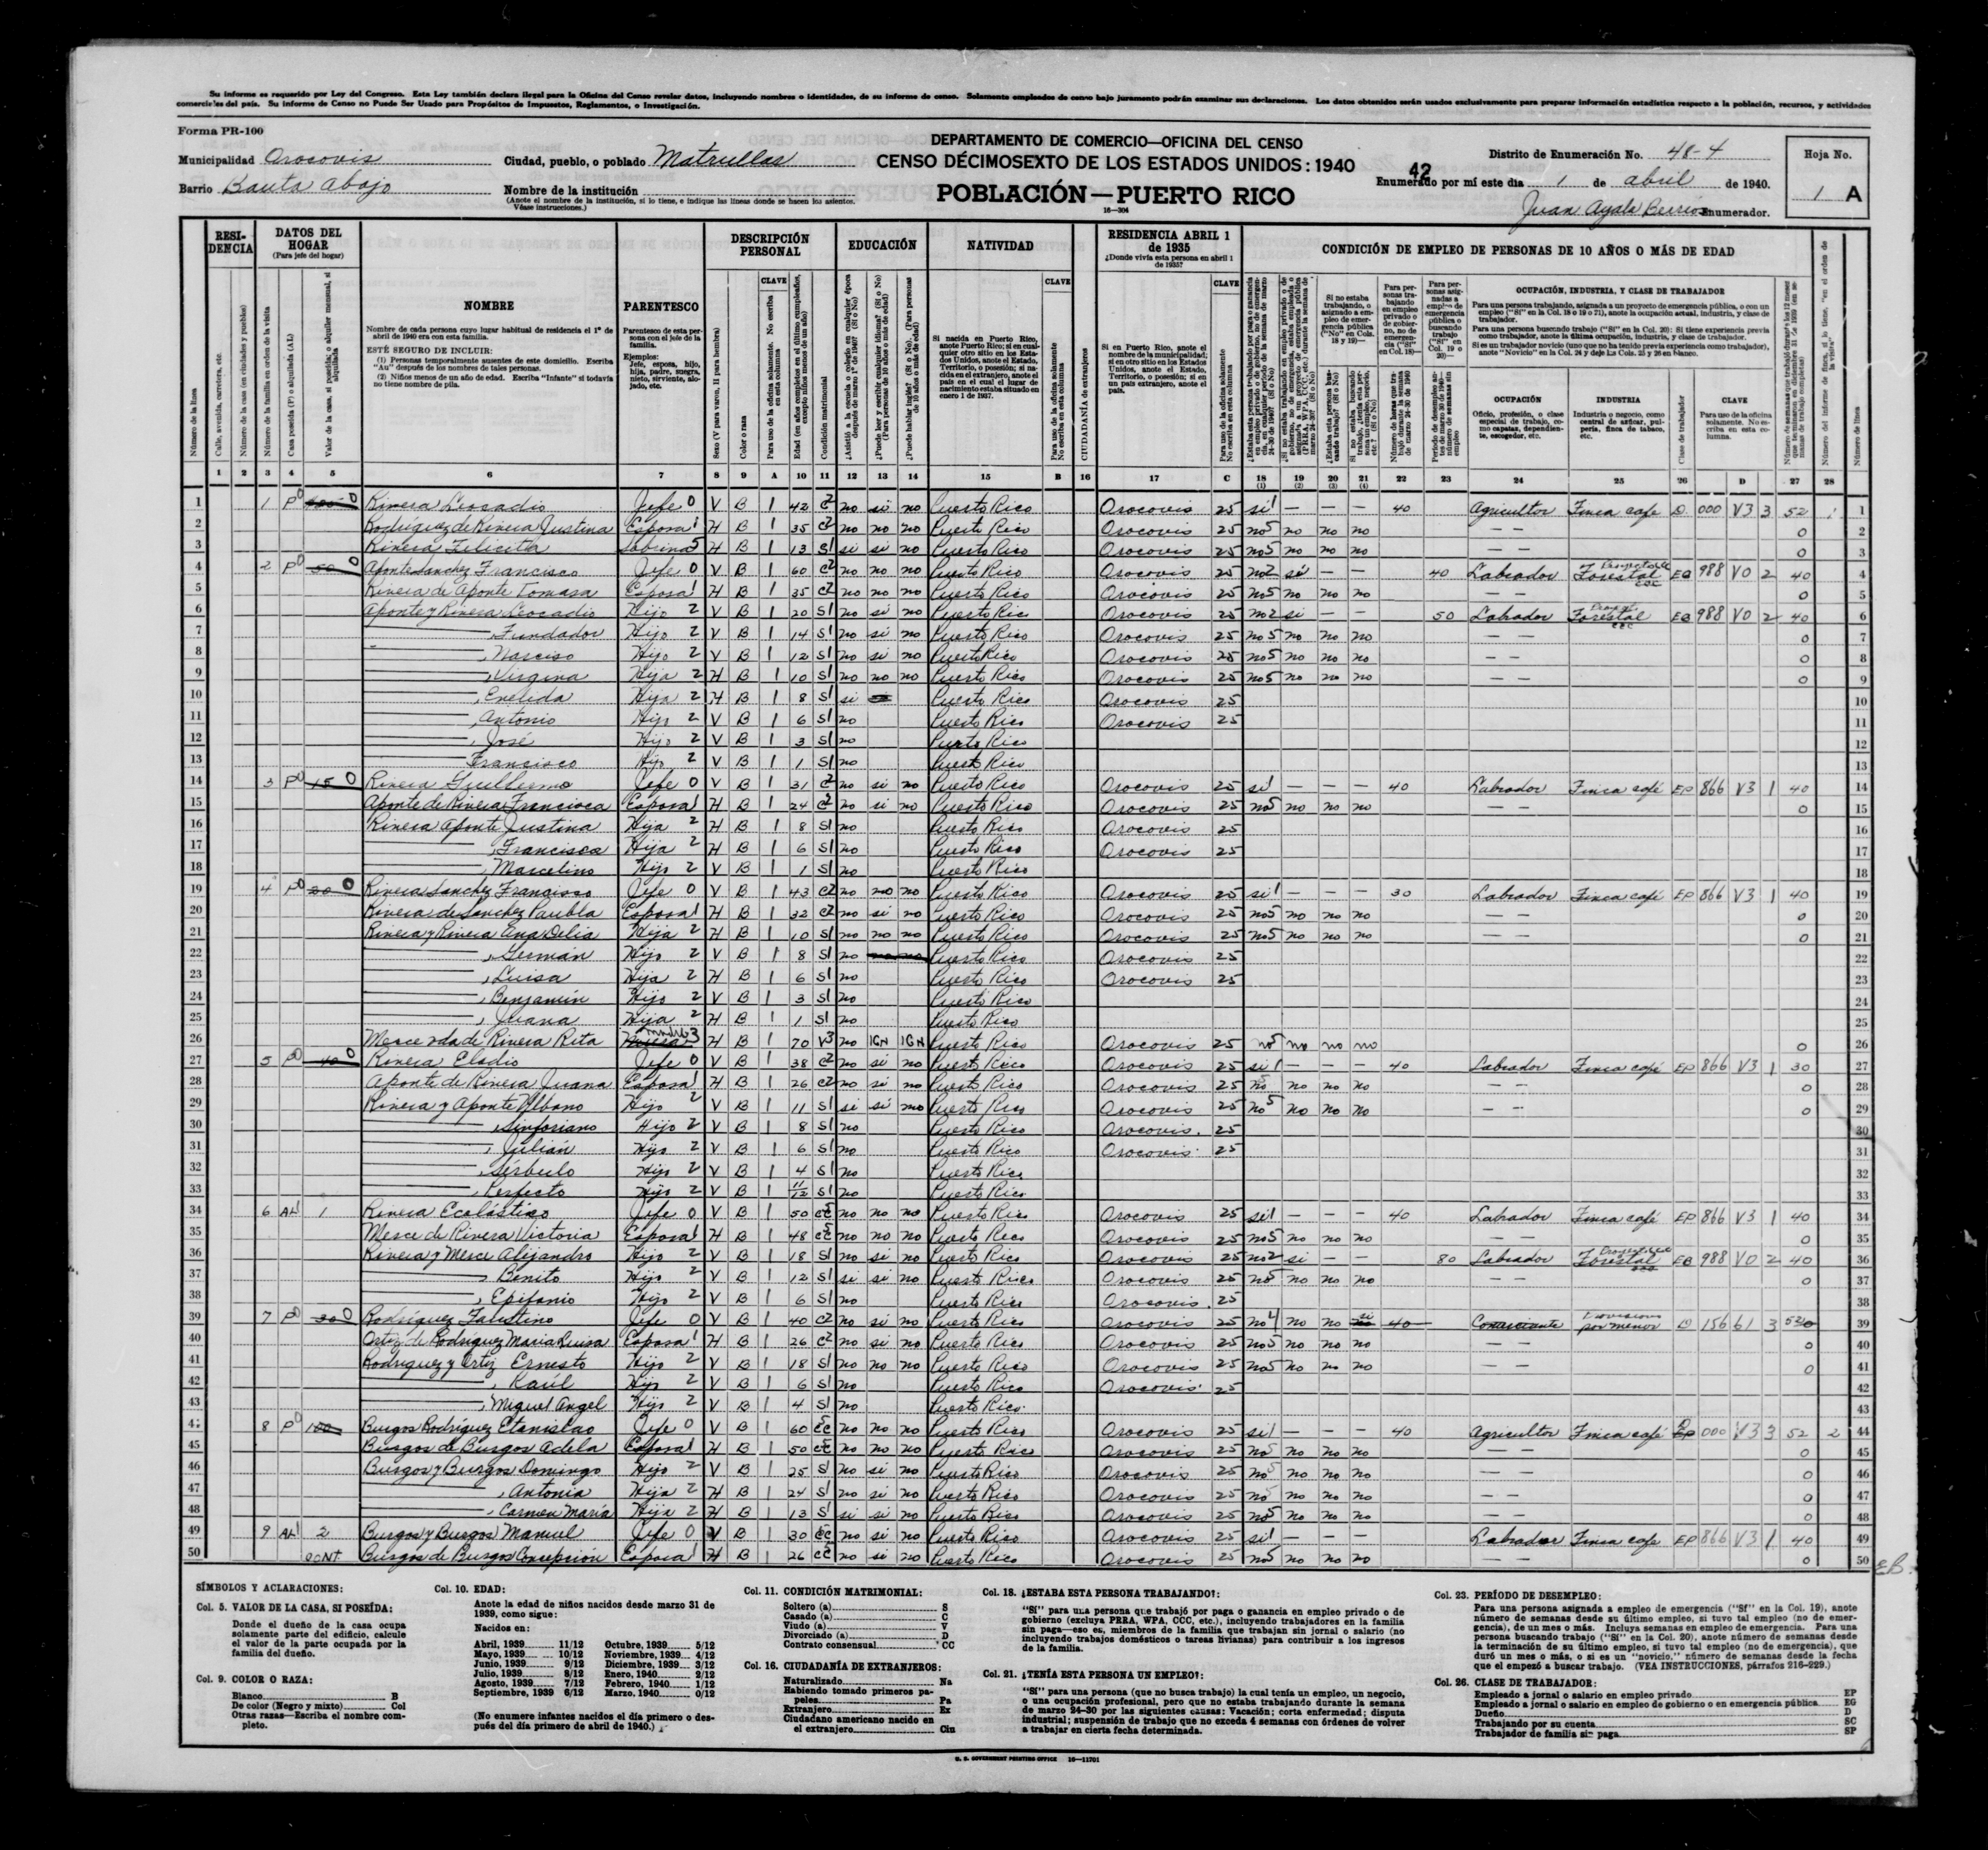 1940 Census Population Schedules - Puerto Rico - Orocovis County - ED 48-4